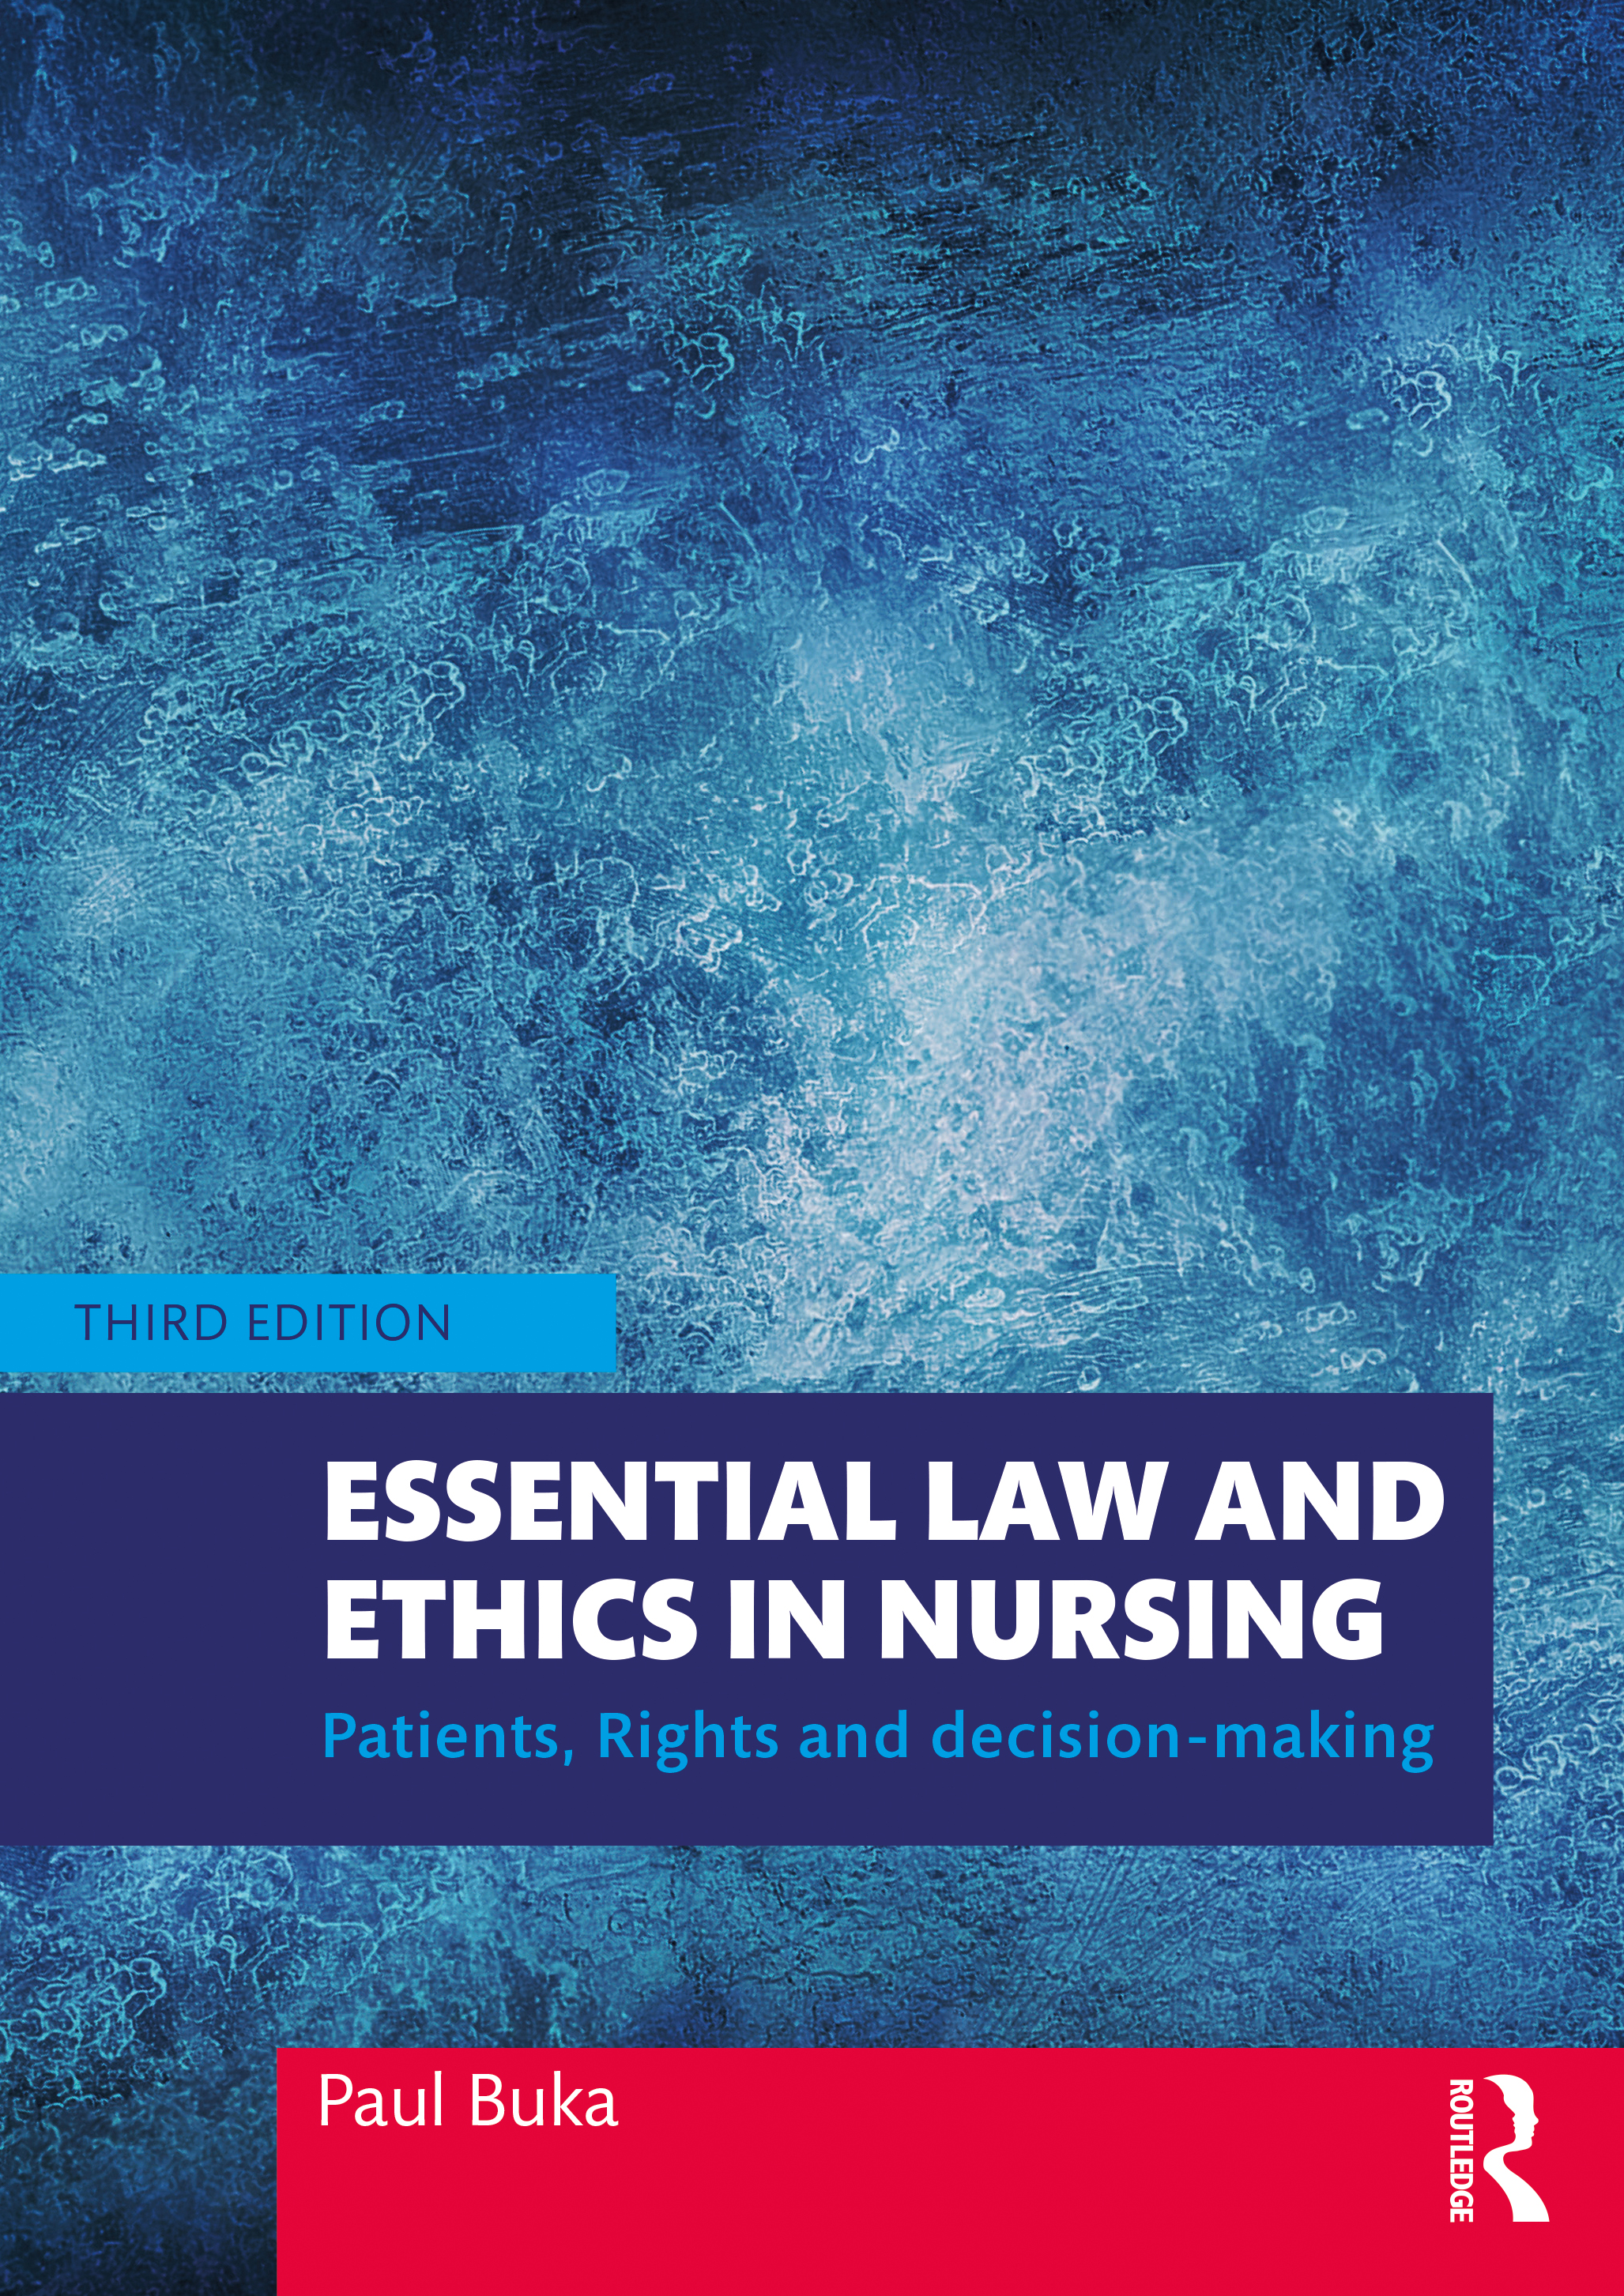 Essential Law and Ethics In Nursing: Patients, Rights and Decision-Making book cover